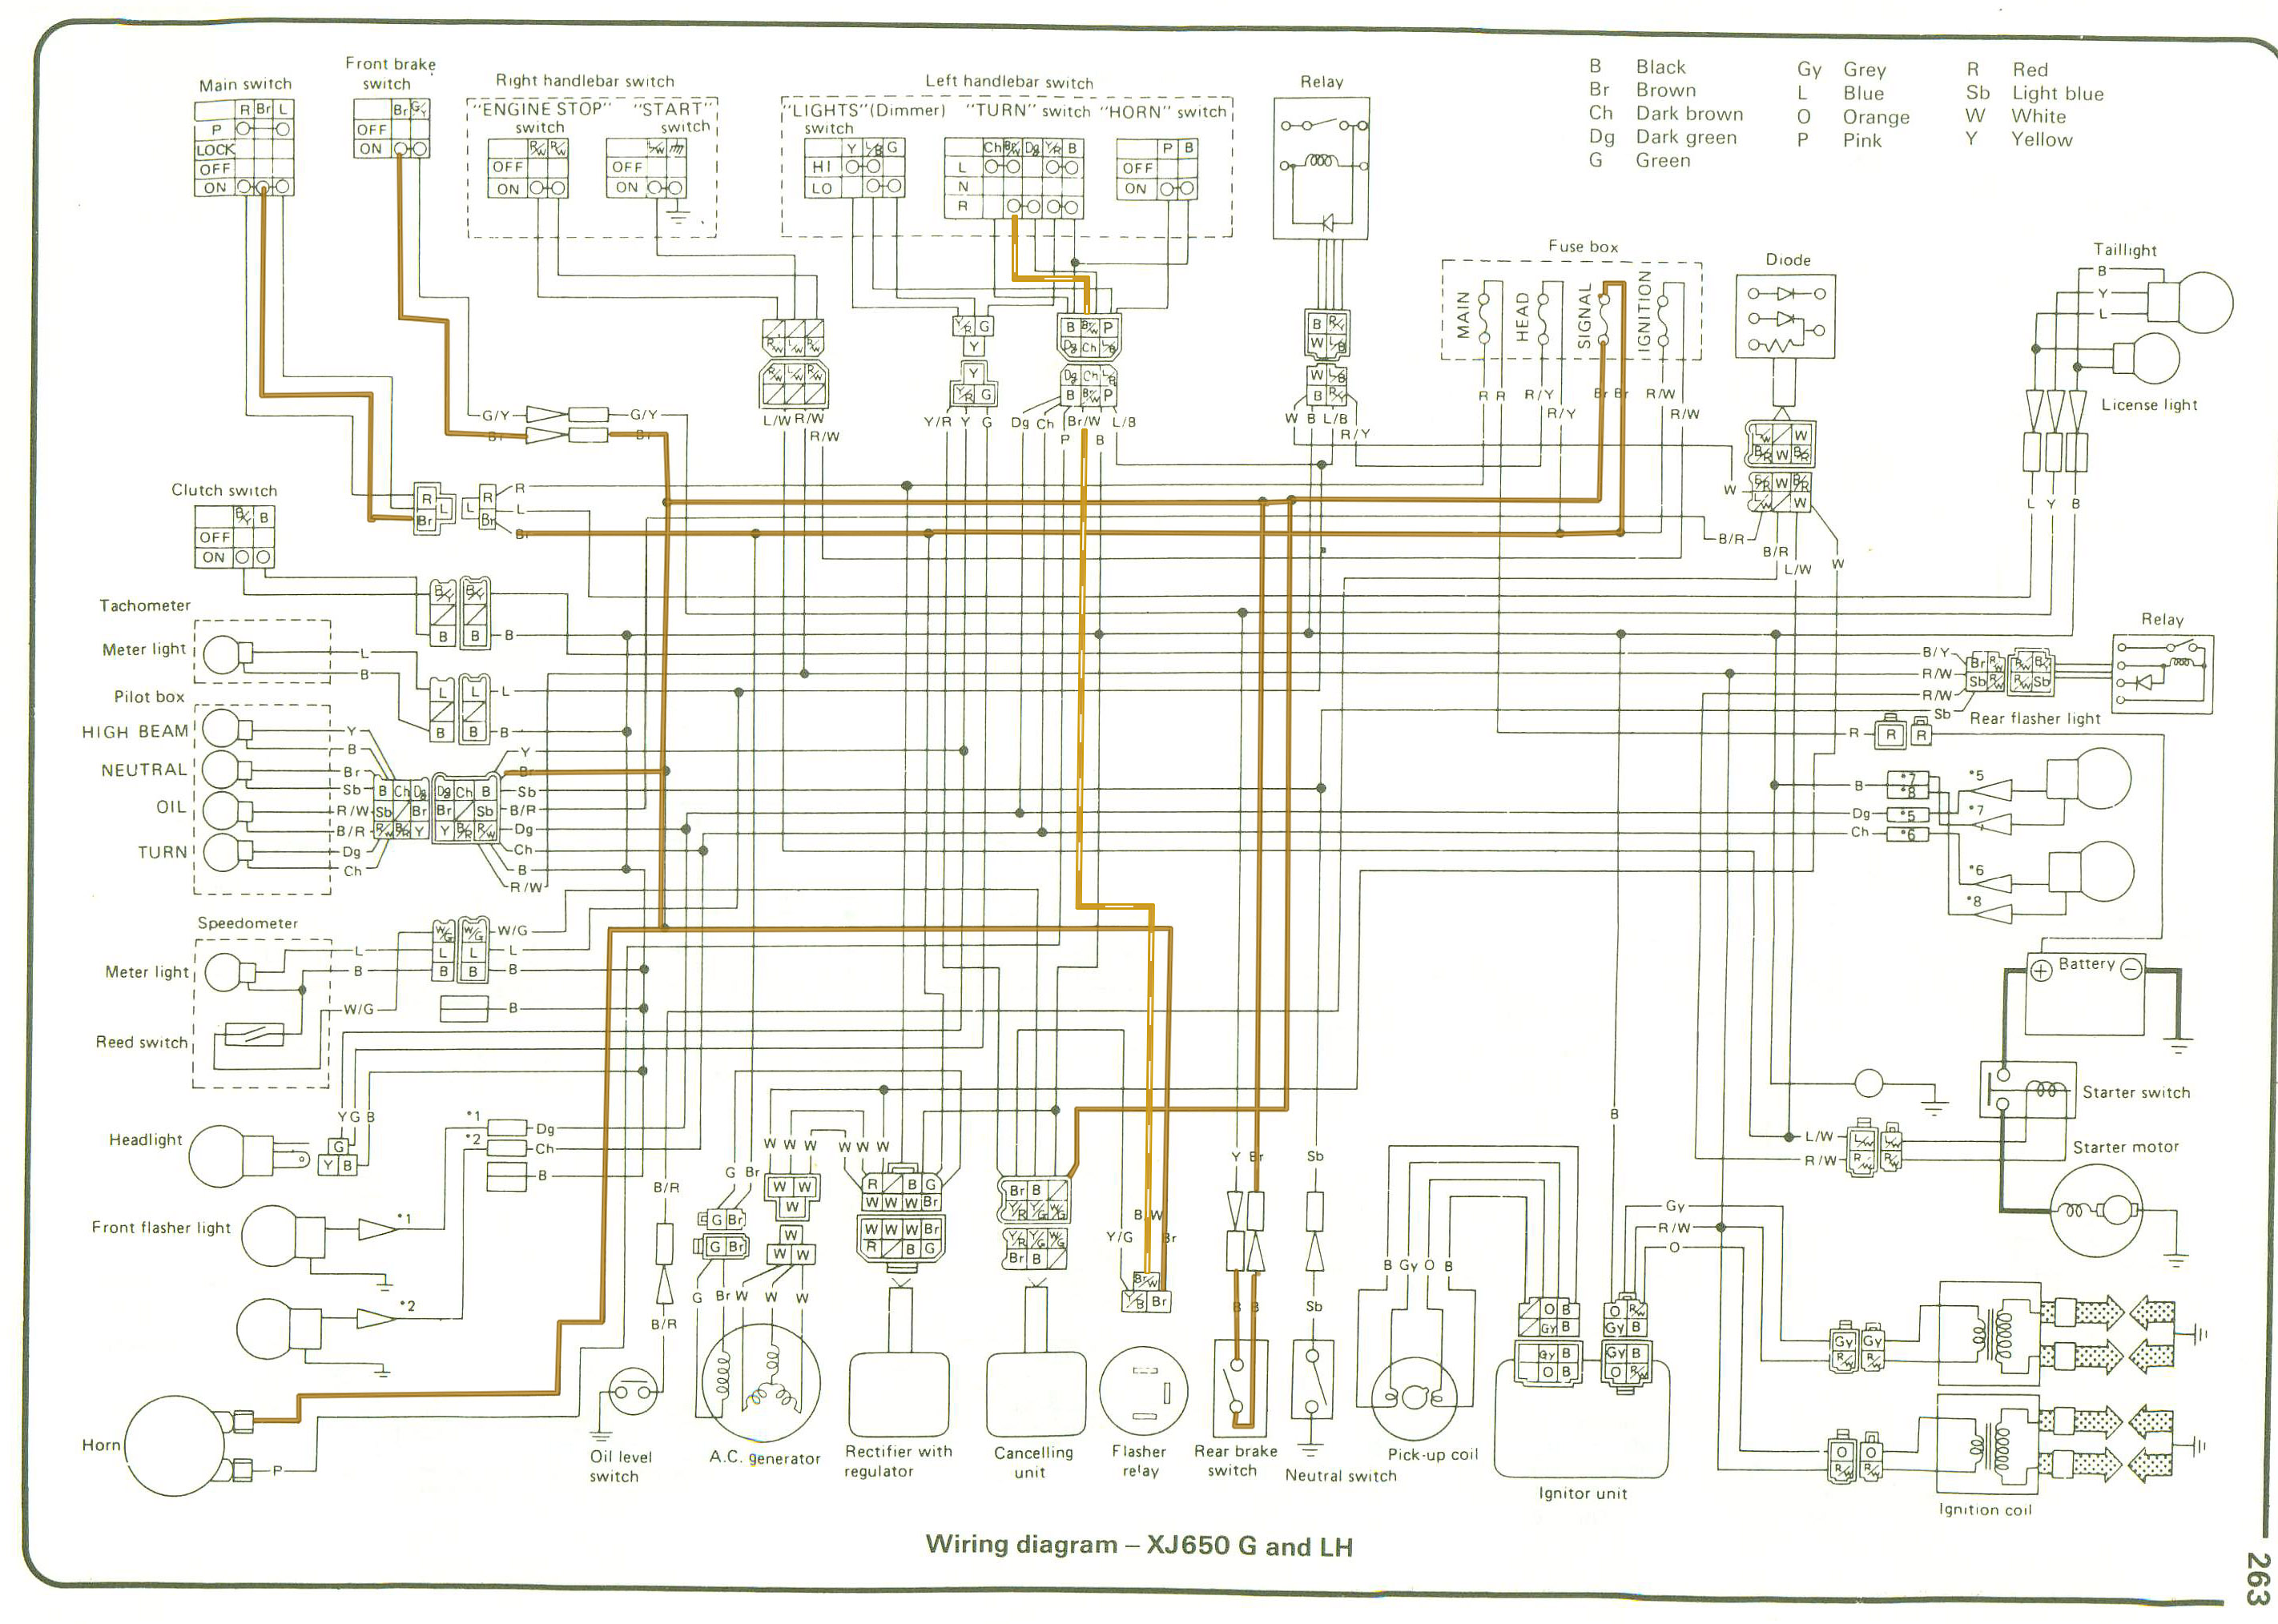 yamaha 650 wiring diagram of a microscope and functions its parts 1979 gt80 xt350